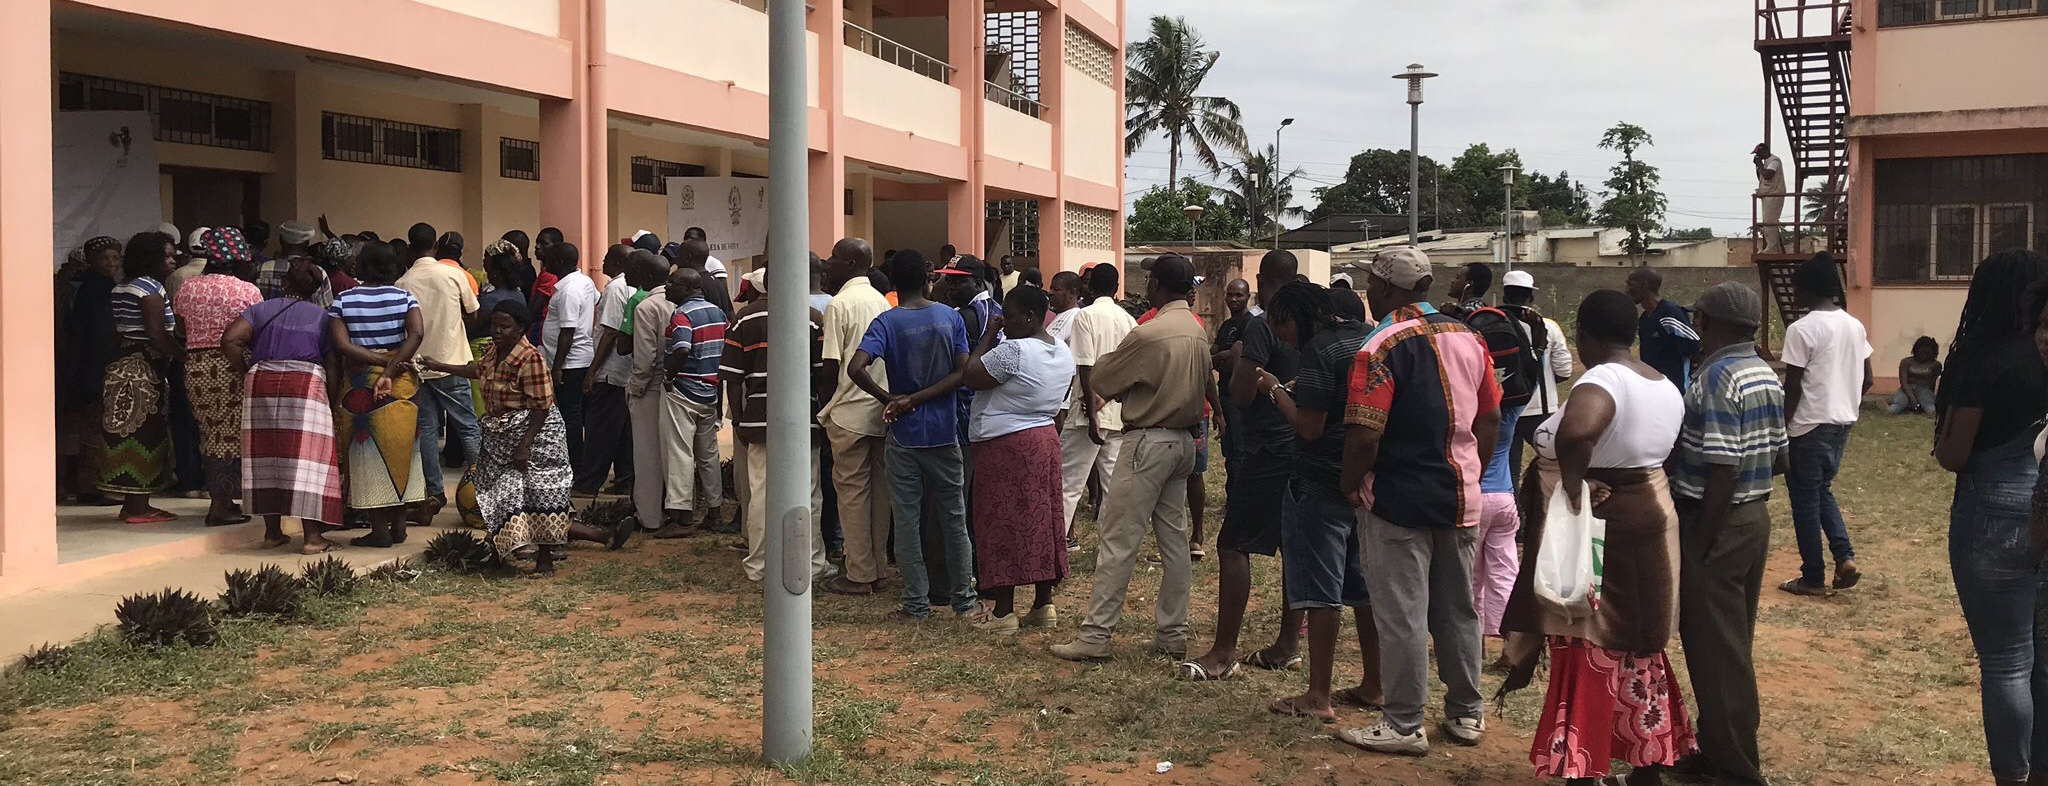 Mozambique elections with «democratic aspirations»